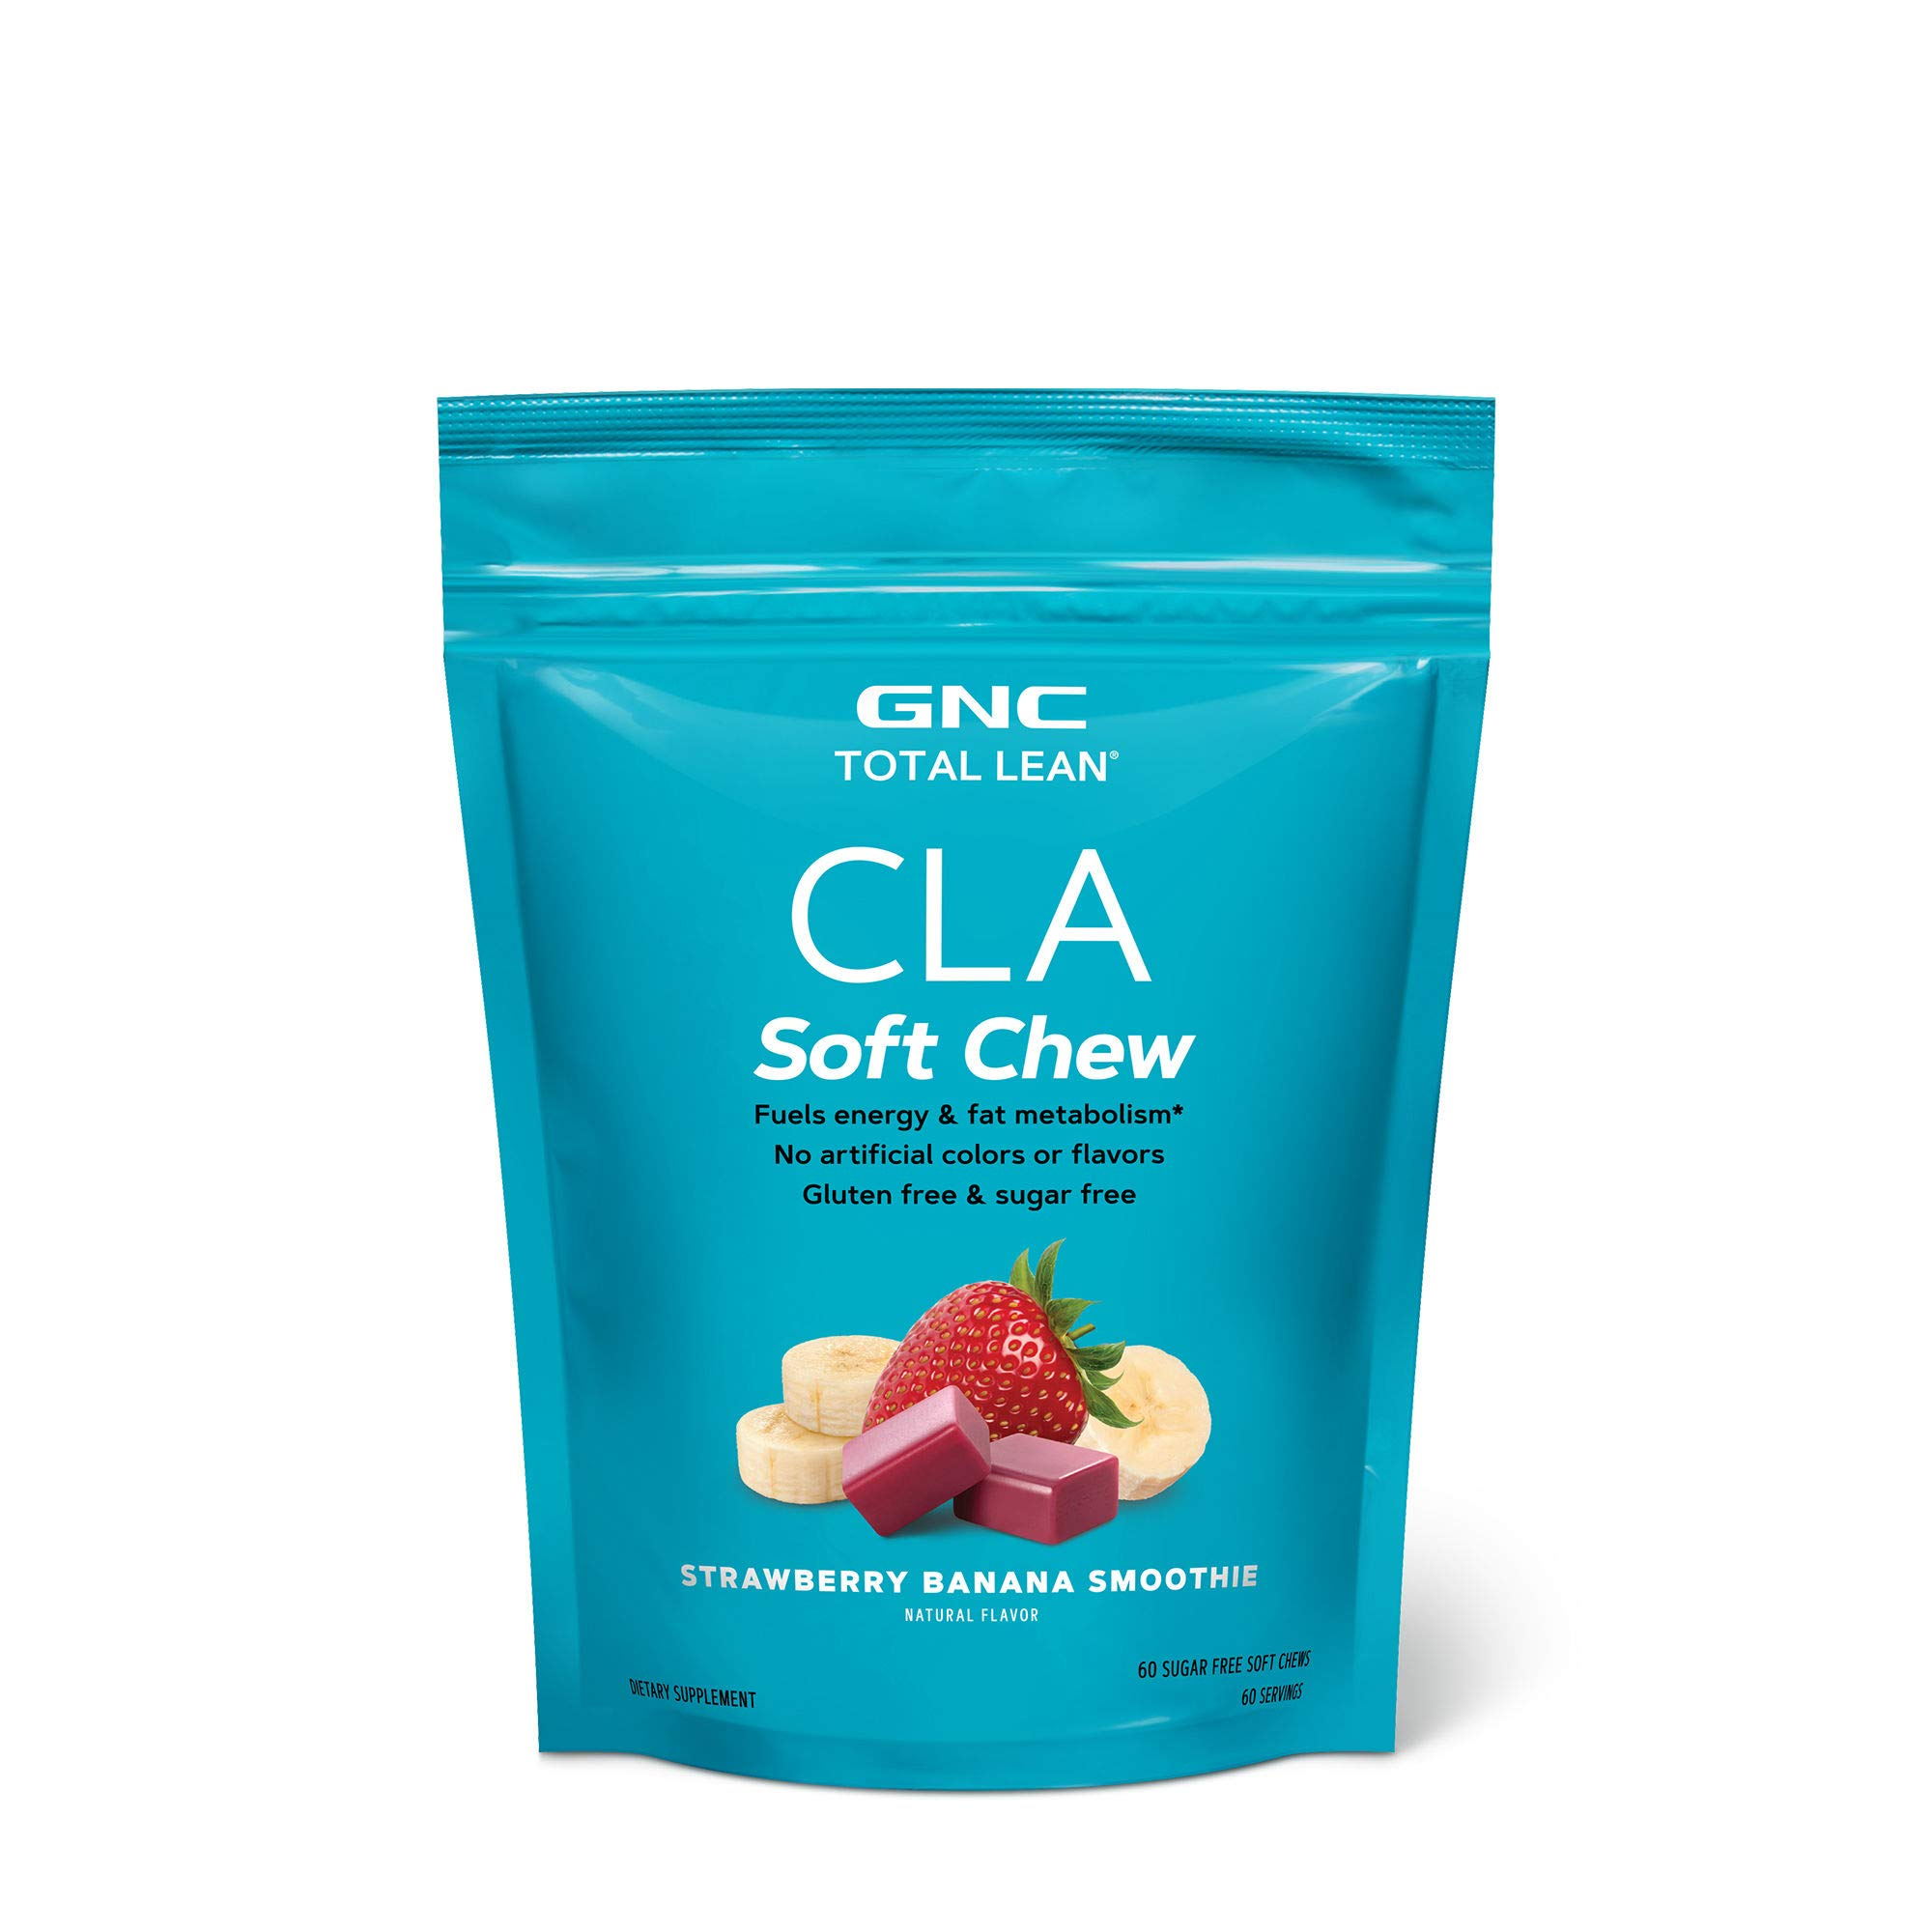 GNC Total Lean CLA Soft Chew, Strawberry Banana Smoothie, 60 Soft Chews, Fuels Energy and Fat Metabolism